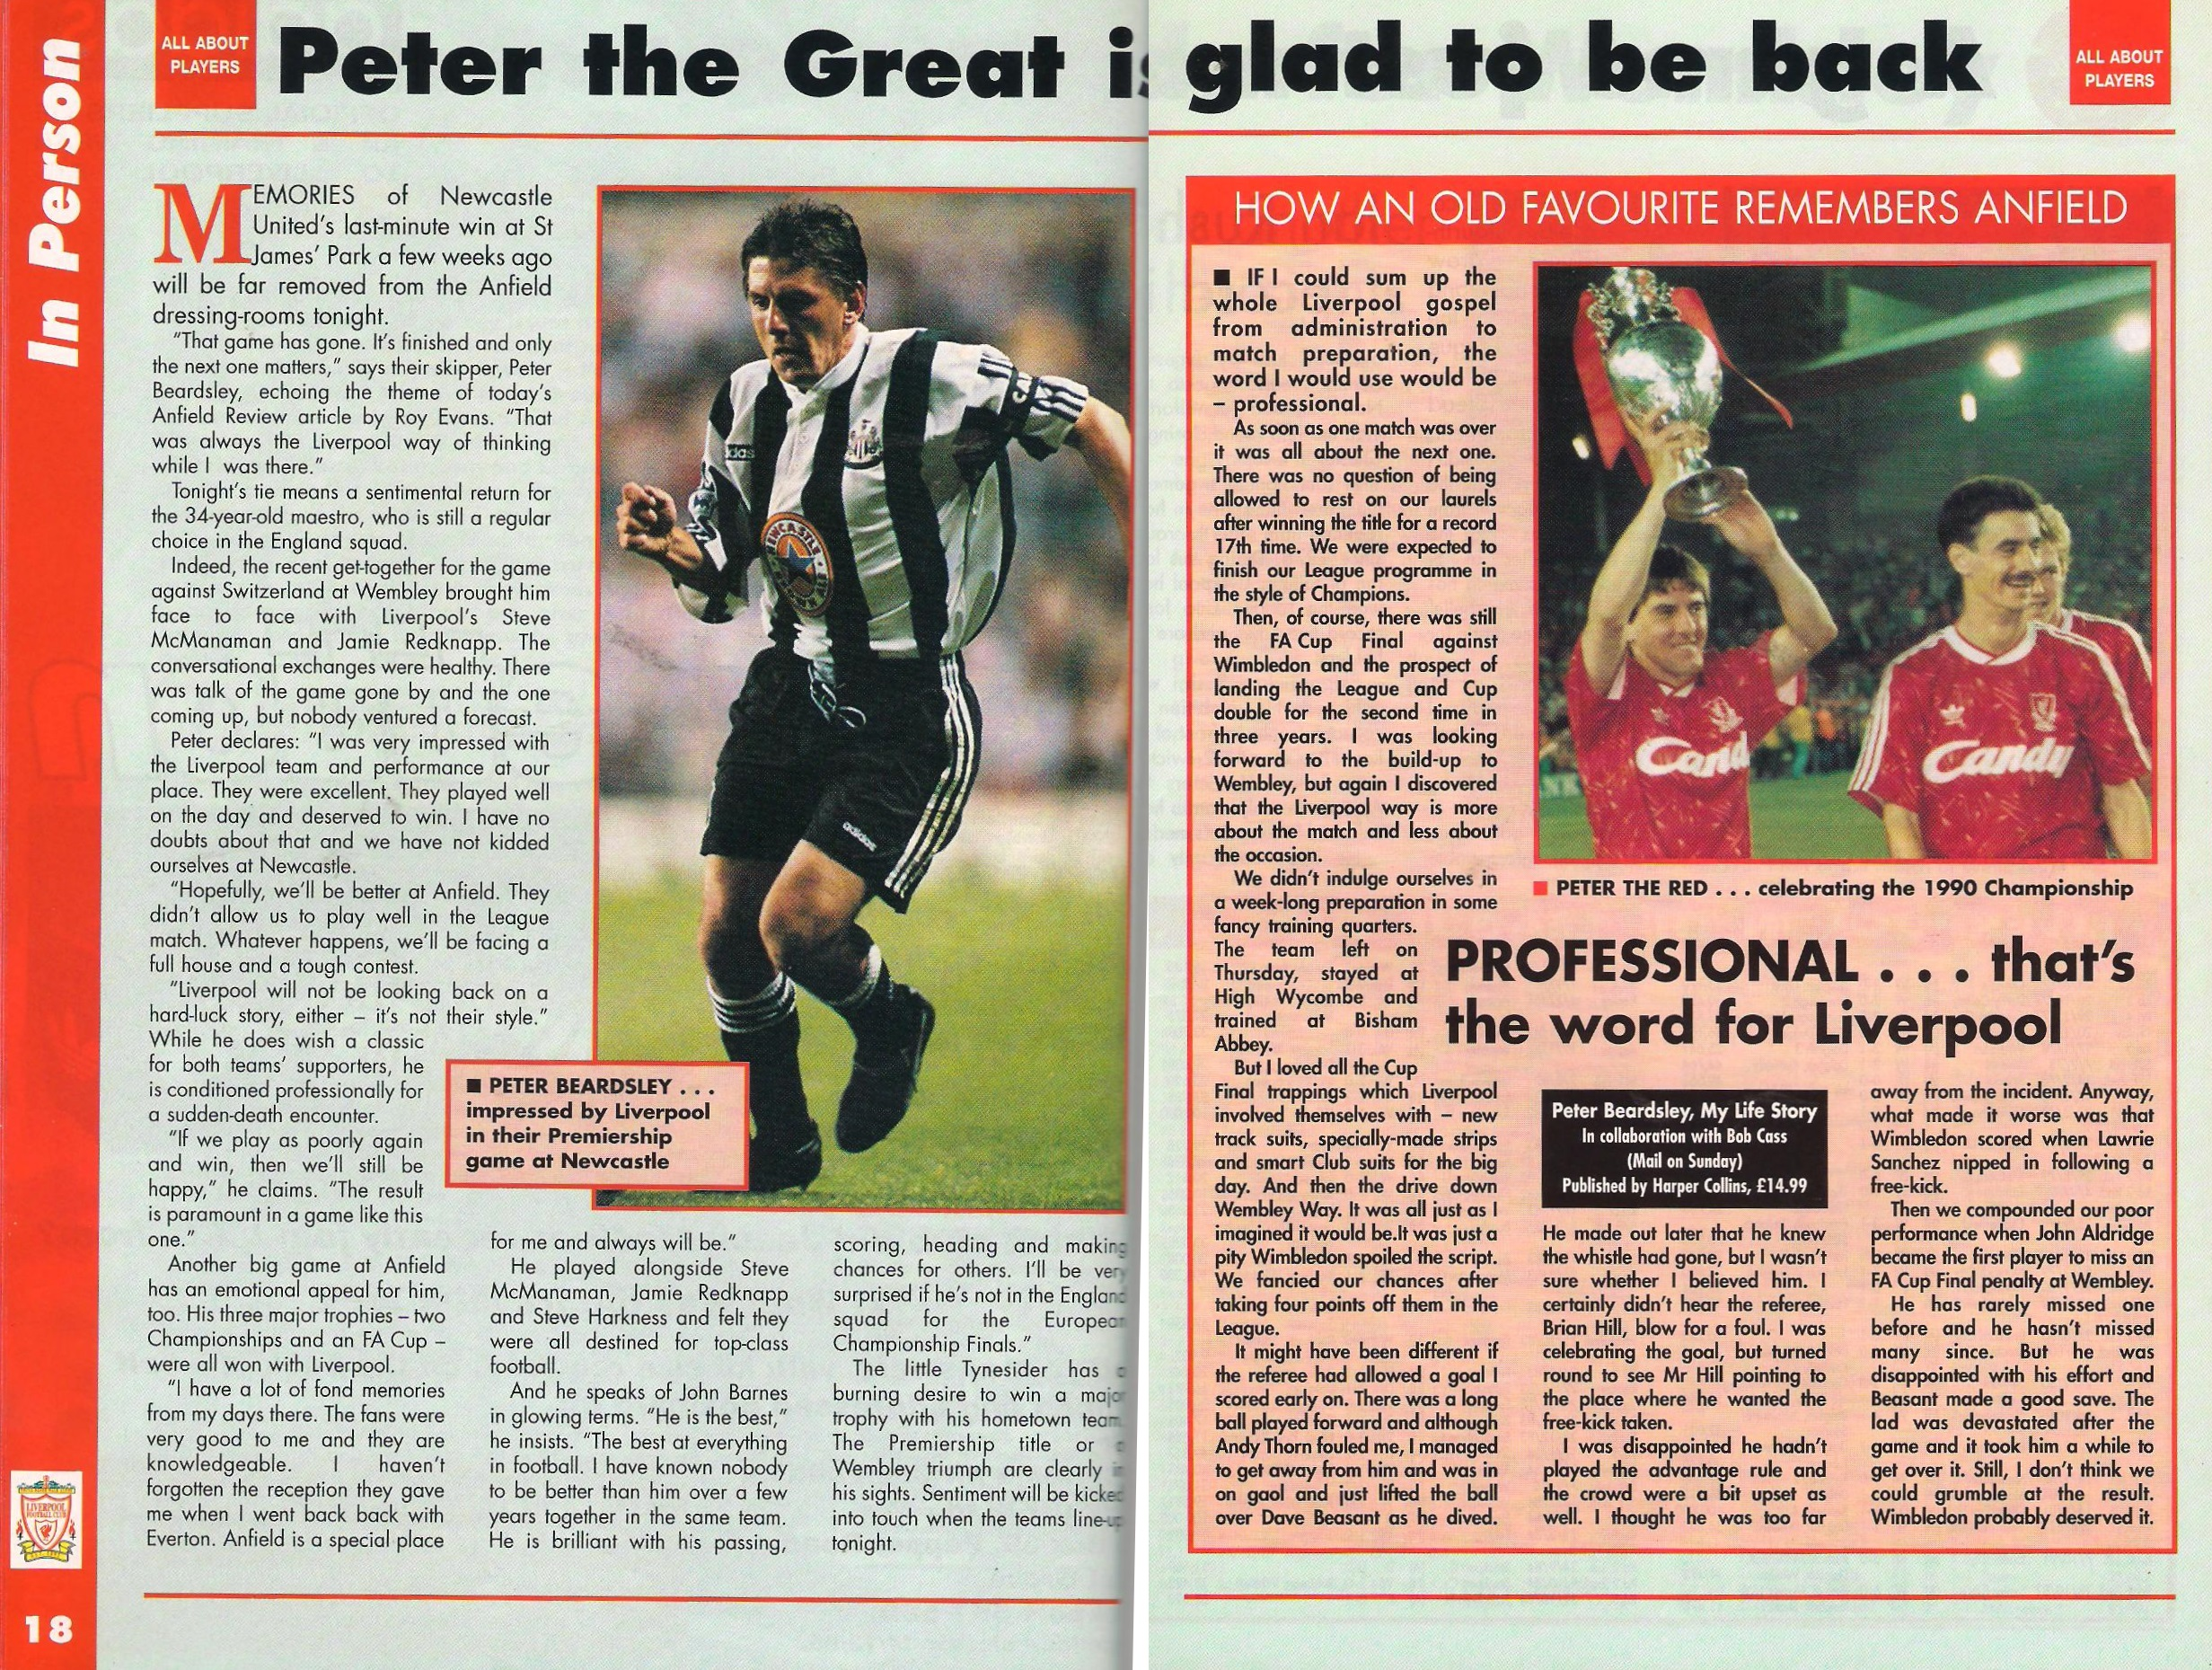 Peter the great glad to be back - 1995